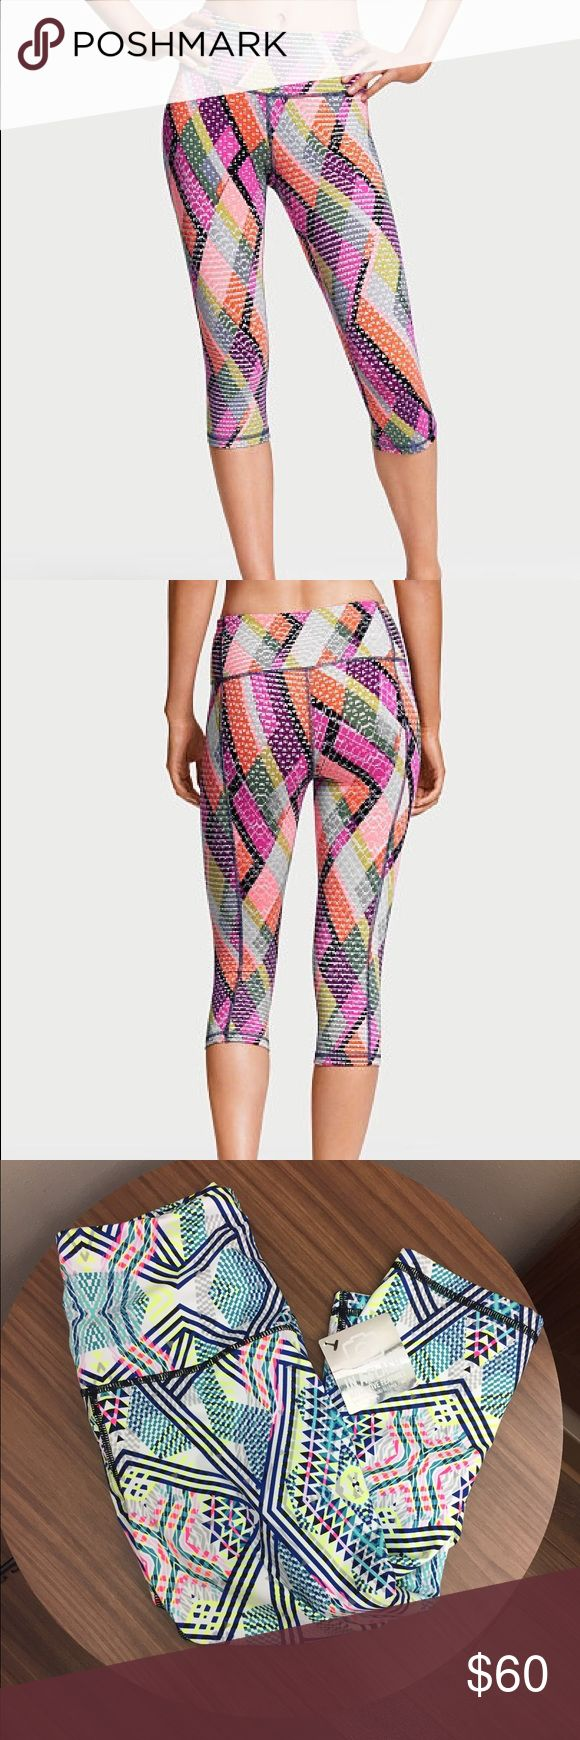 Victoria's Secret Sport Mixed-Media Legging NWT Mixed-Media HIGH RISE sportswear by VSX! ✨smooth seams ✨Form-fitting ✨waistband pocket ✨Body-Wick fabric ✨hidden waistband drawstring                                (I apologize for not being able to find the picture of the true pattern on the website) Victoria's Secret Pants Leggings